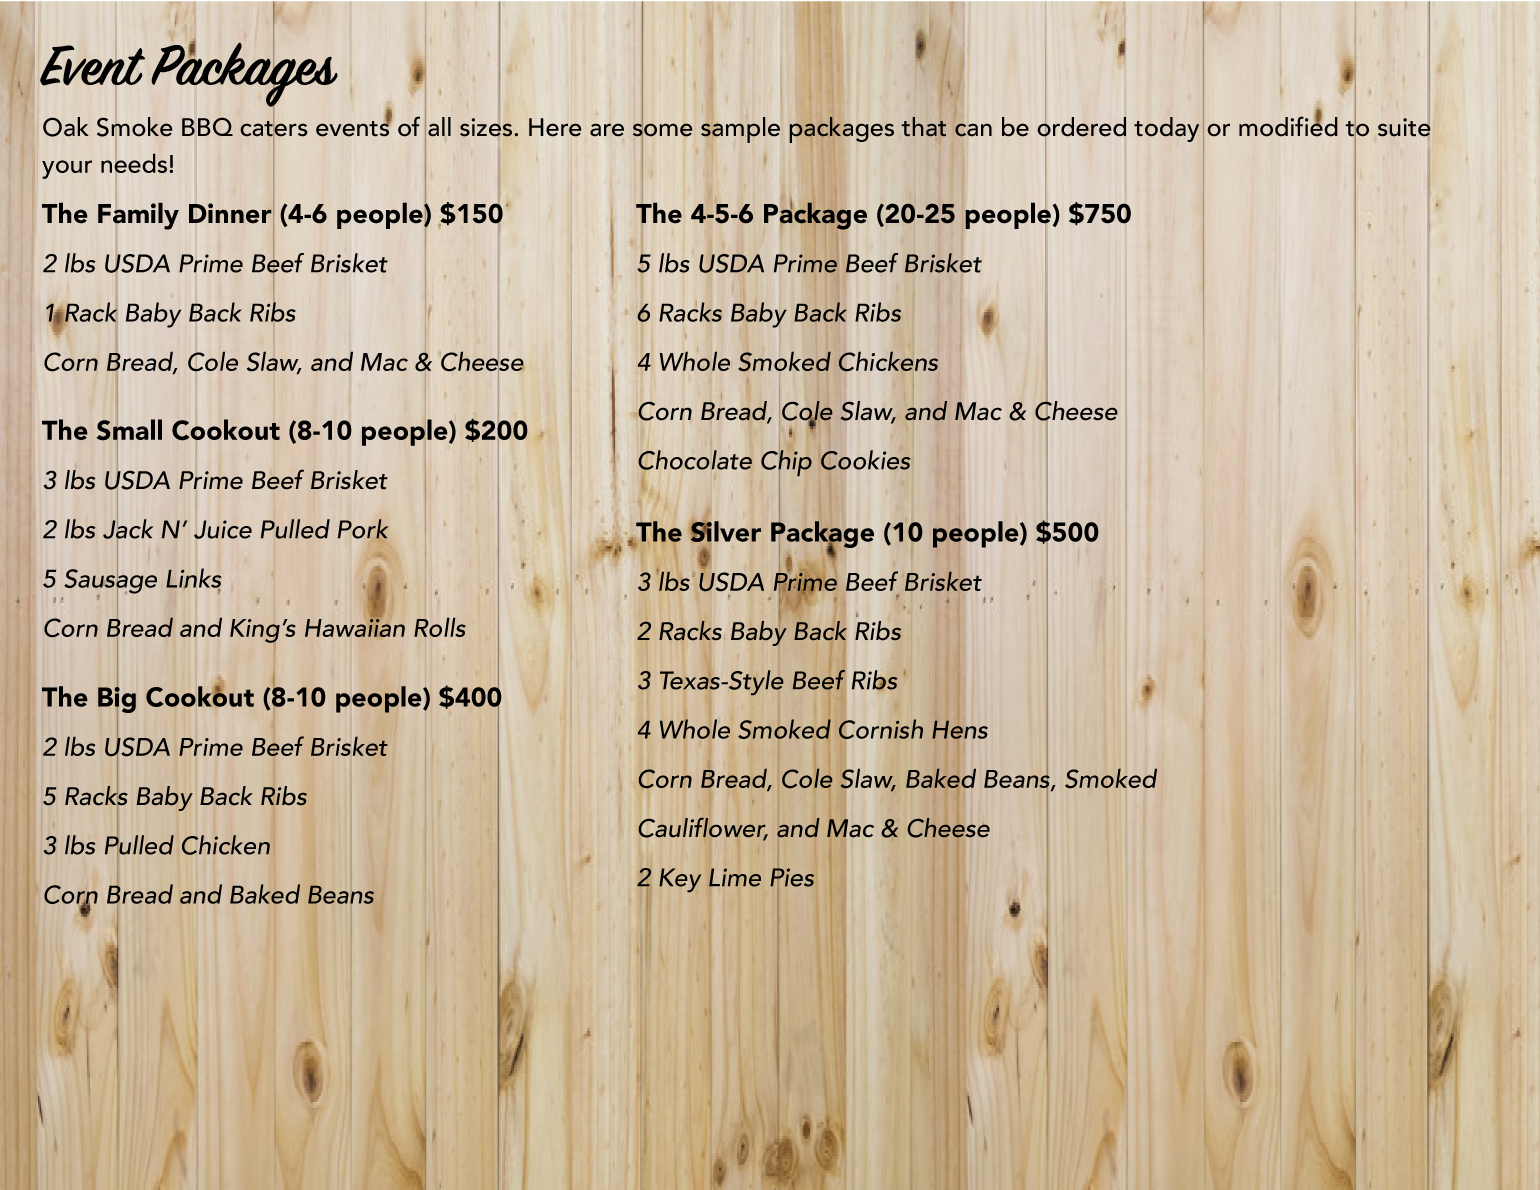 CATERING-GUIDE-PACKAGES-1.png